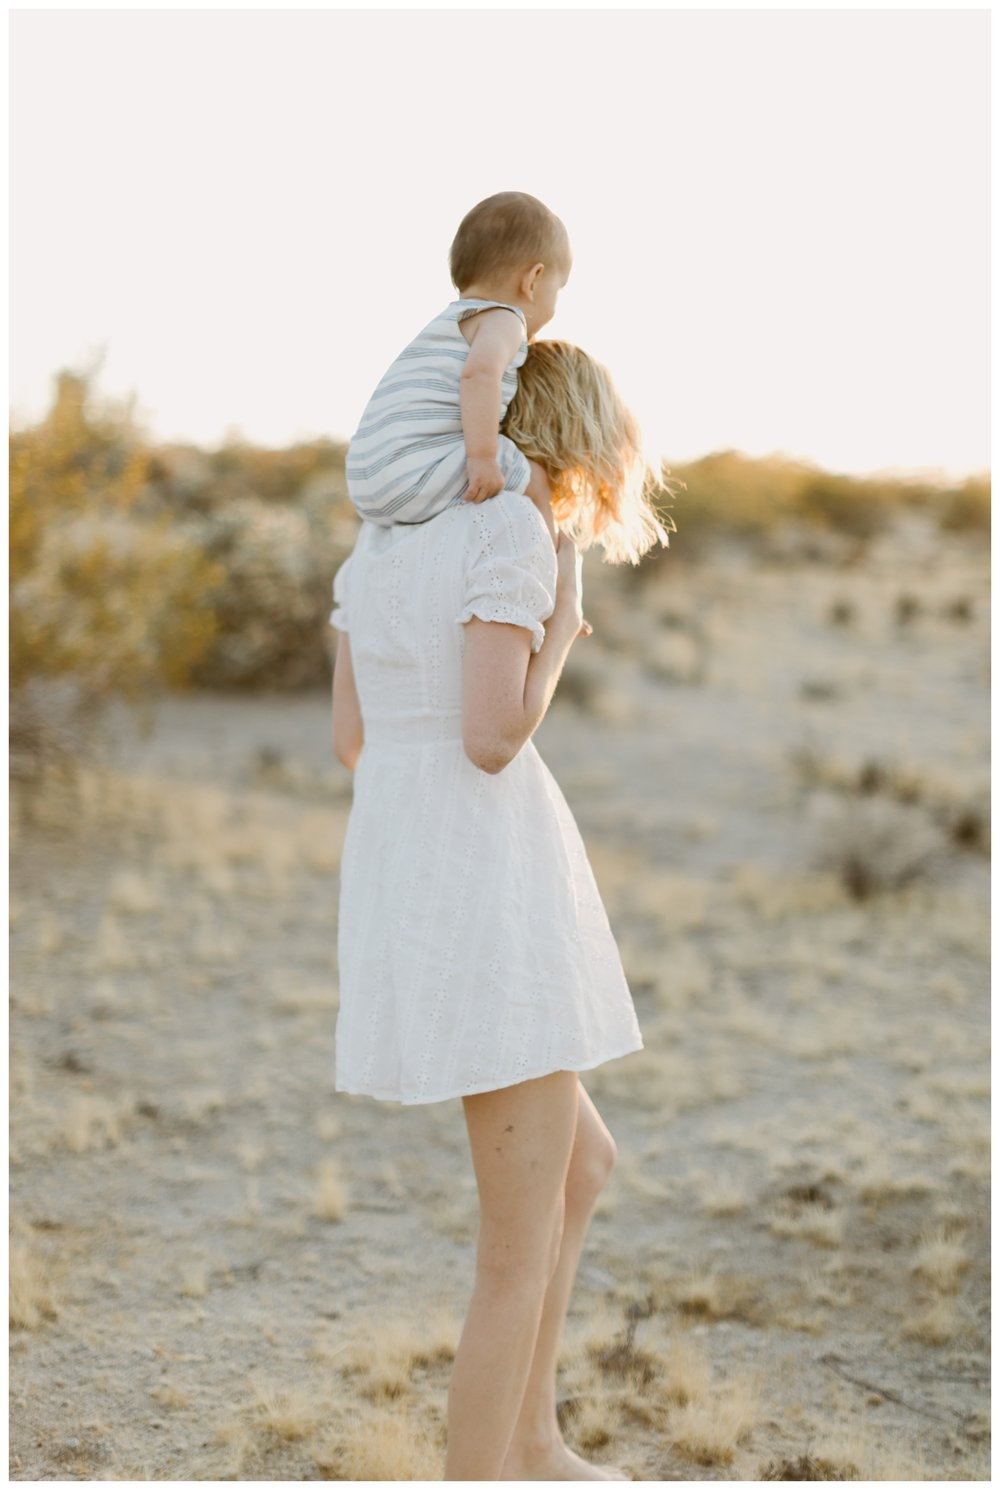 rhi-motherhood-joshua-tree (63 of 113).jpg